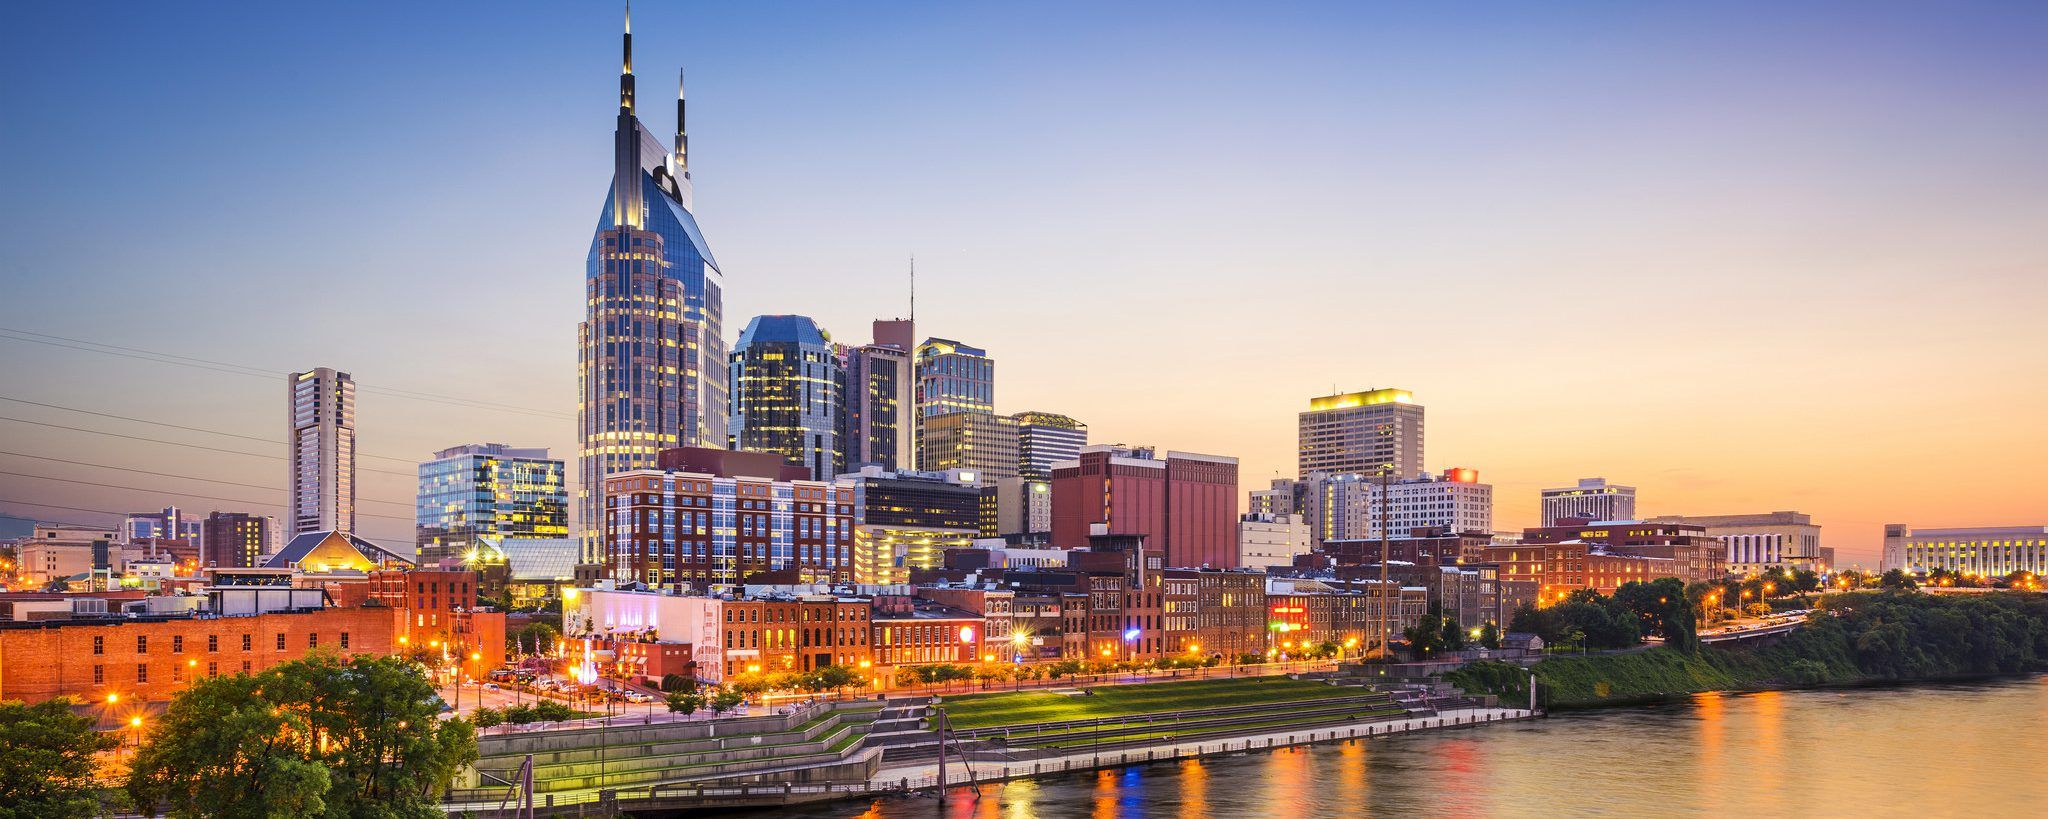 Philadelphia's been a great place for the first 2 years of WordCamp US. Next year, we're headed to Nashville! https://t.co/w5UHrS9rVl #wcus https://t.co/UUvm9KXZrJ